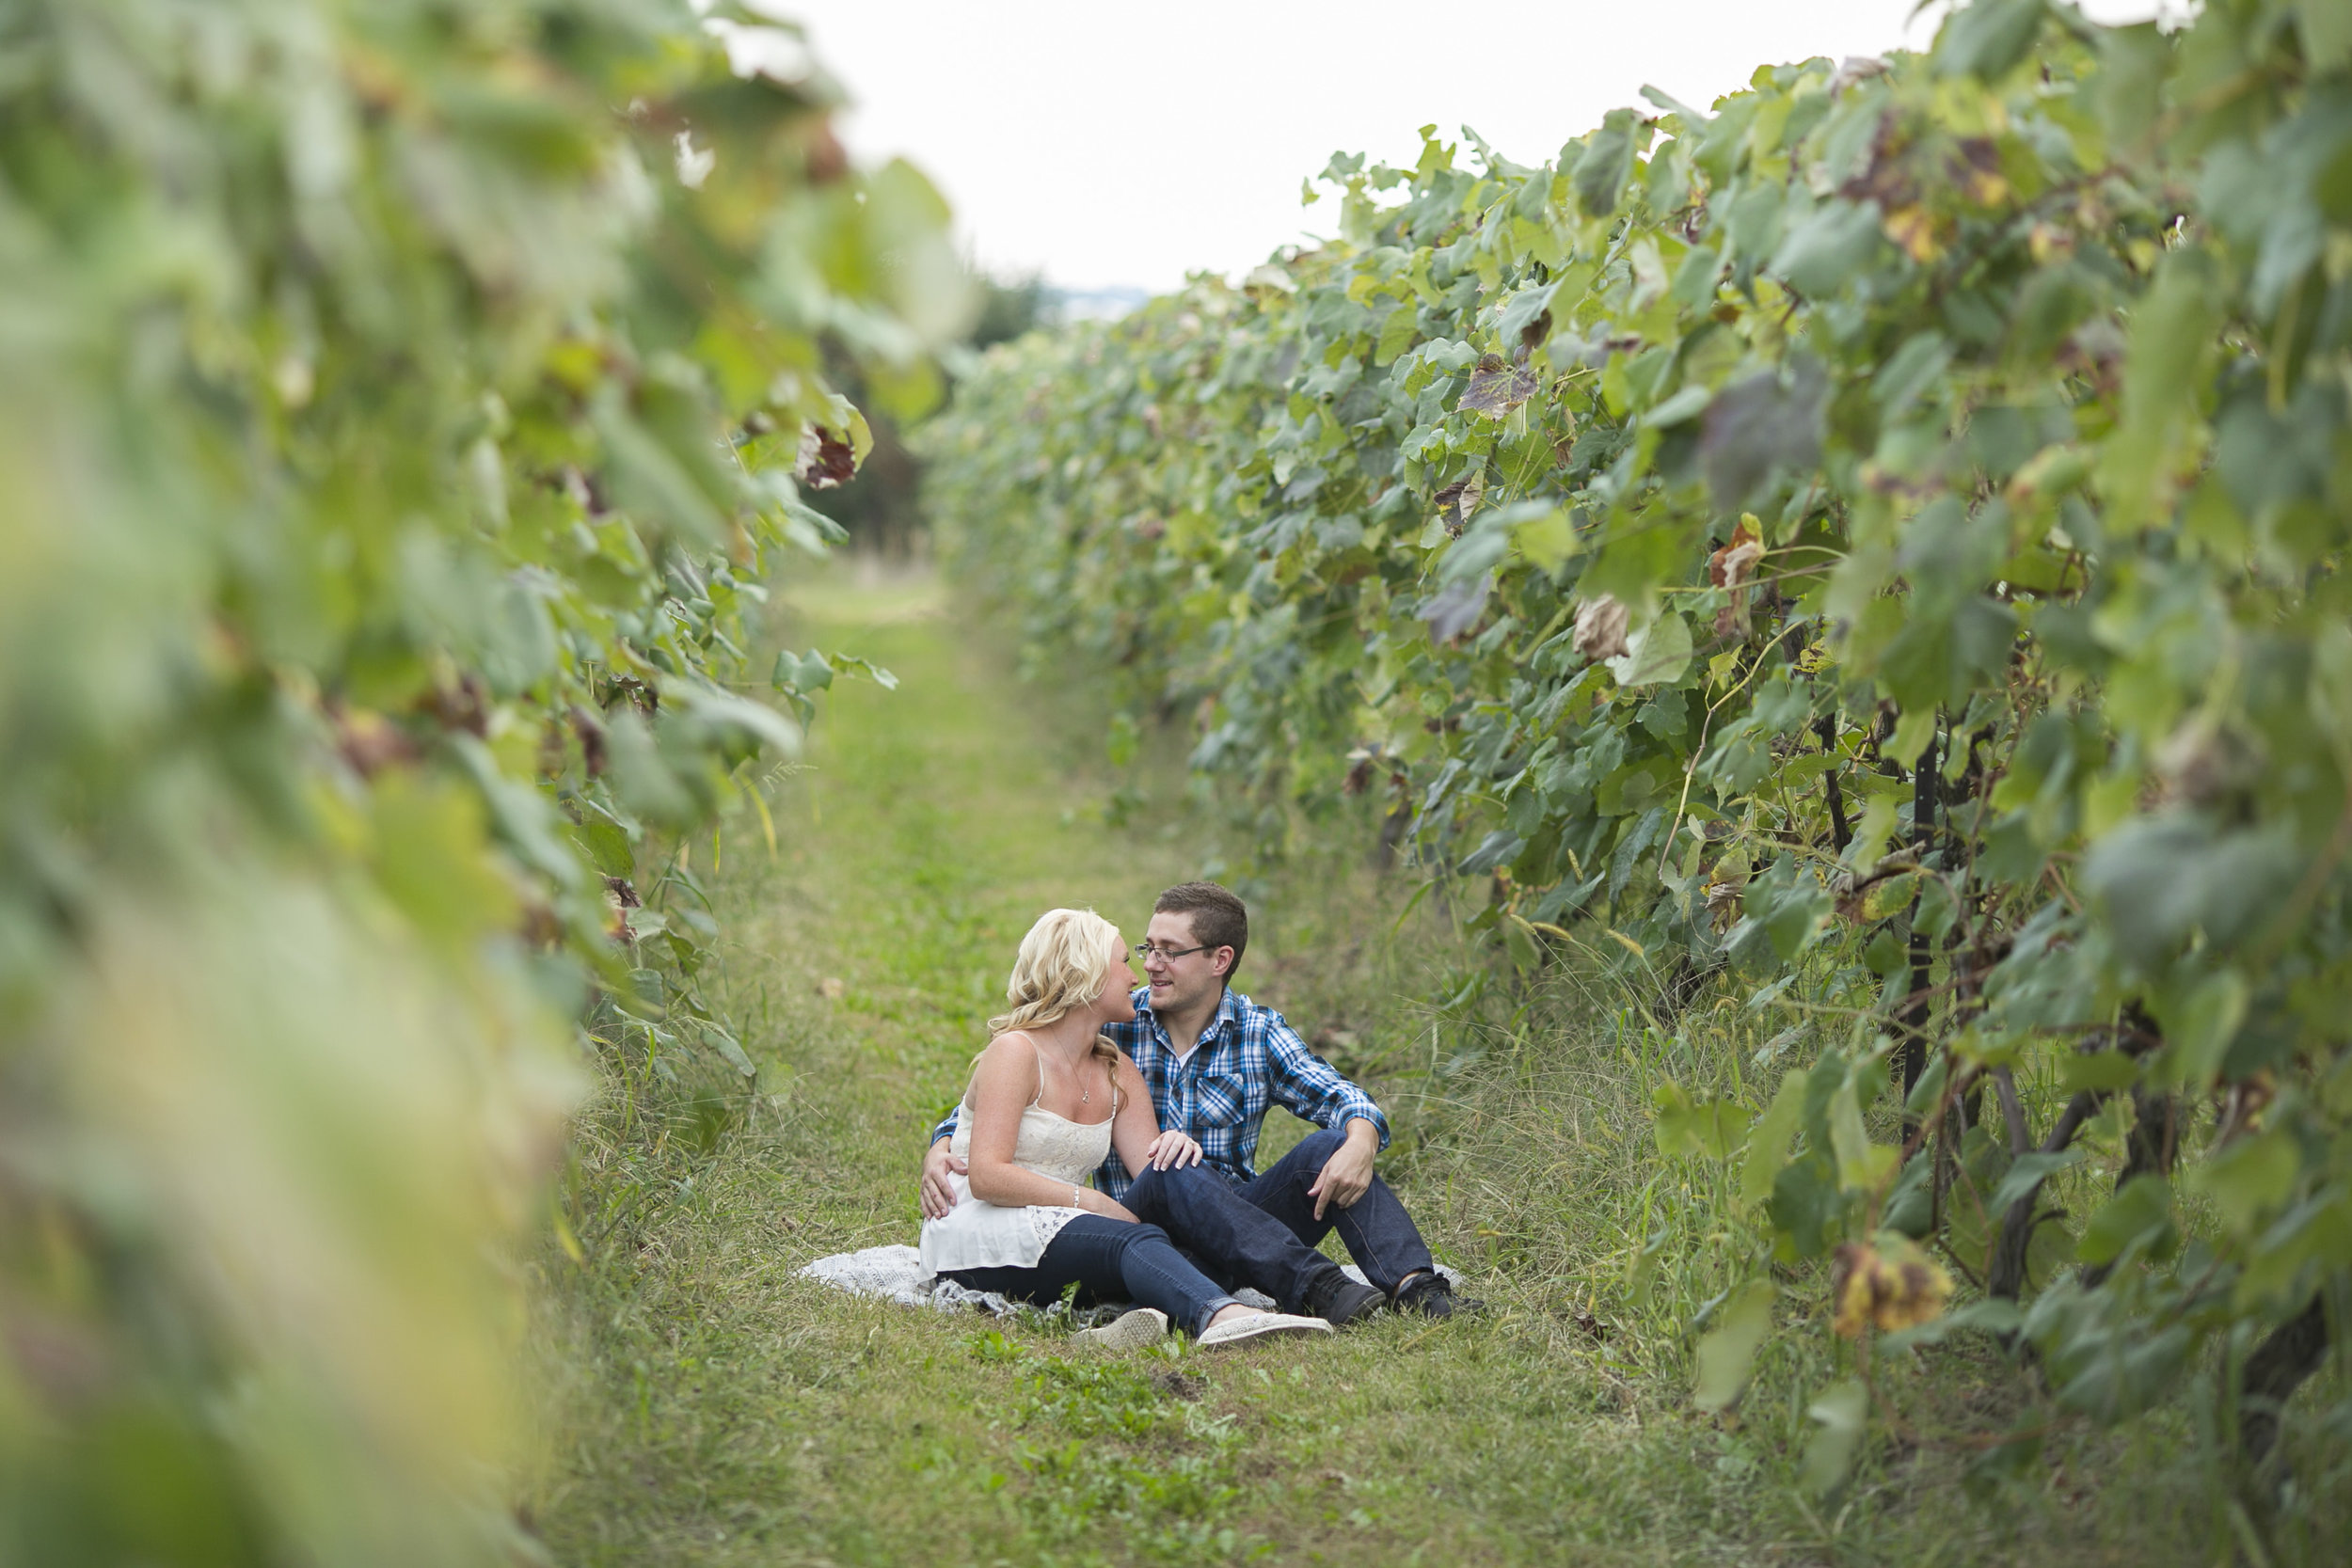 Niagara-on-the-Lake-Engagement-photos-by-Philosophy-Studios-007.JPG